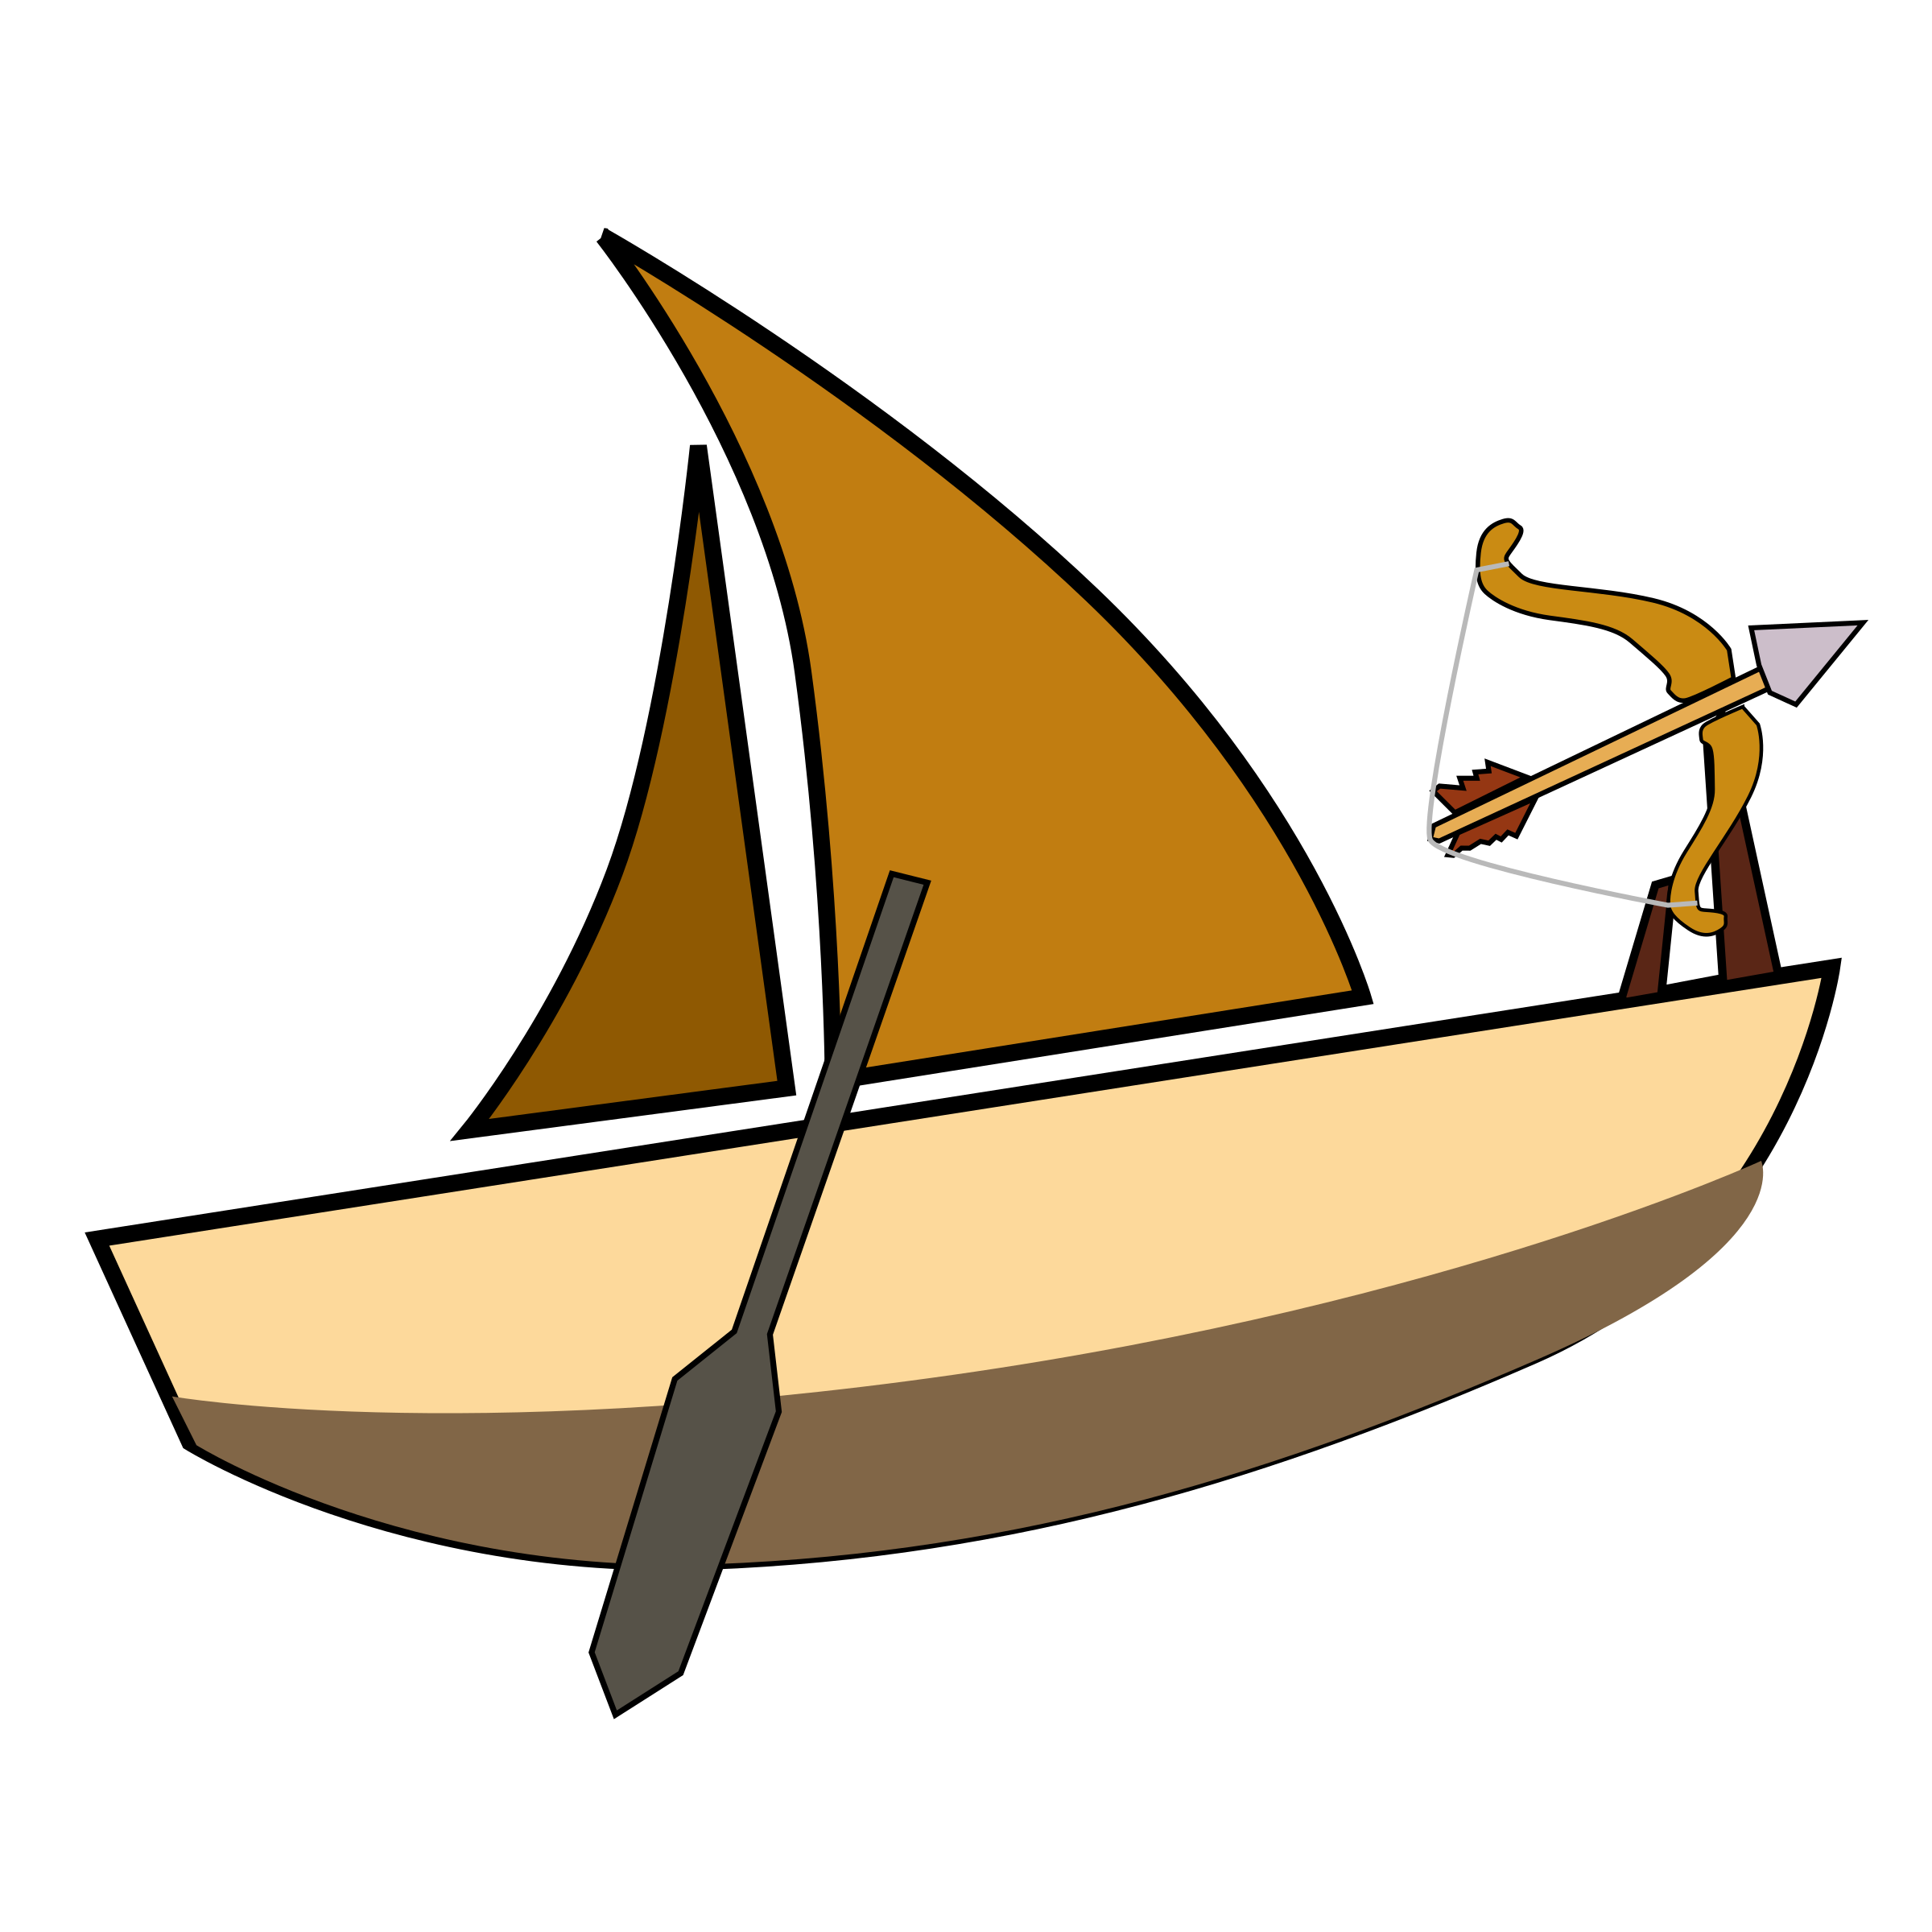 Boat clipart skiff. Sailing with arrow attached